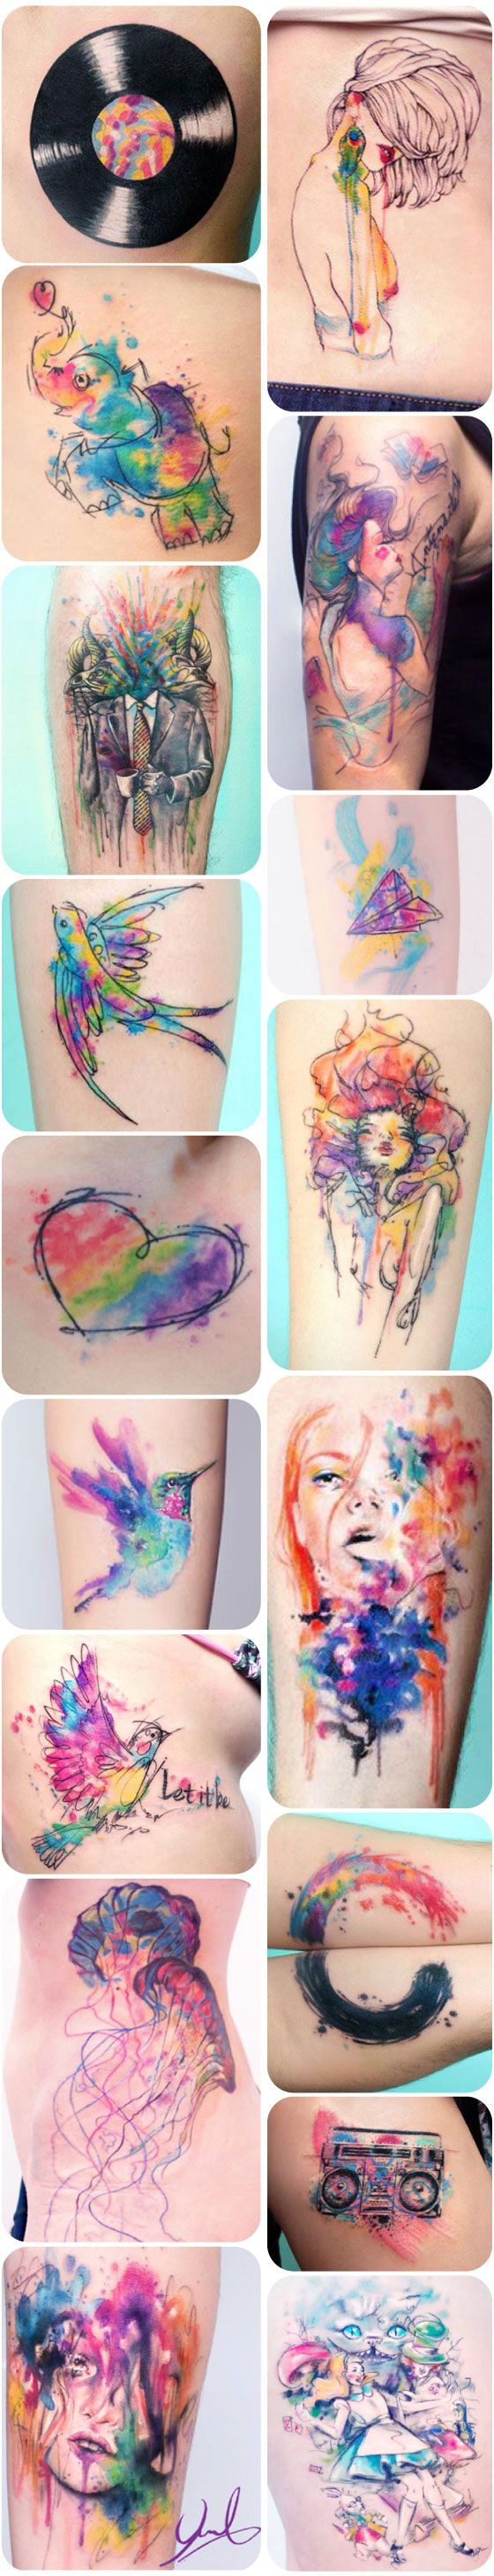 tatoos aquareladas kauê plus size 4